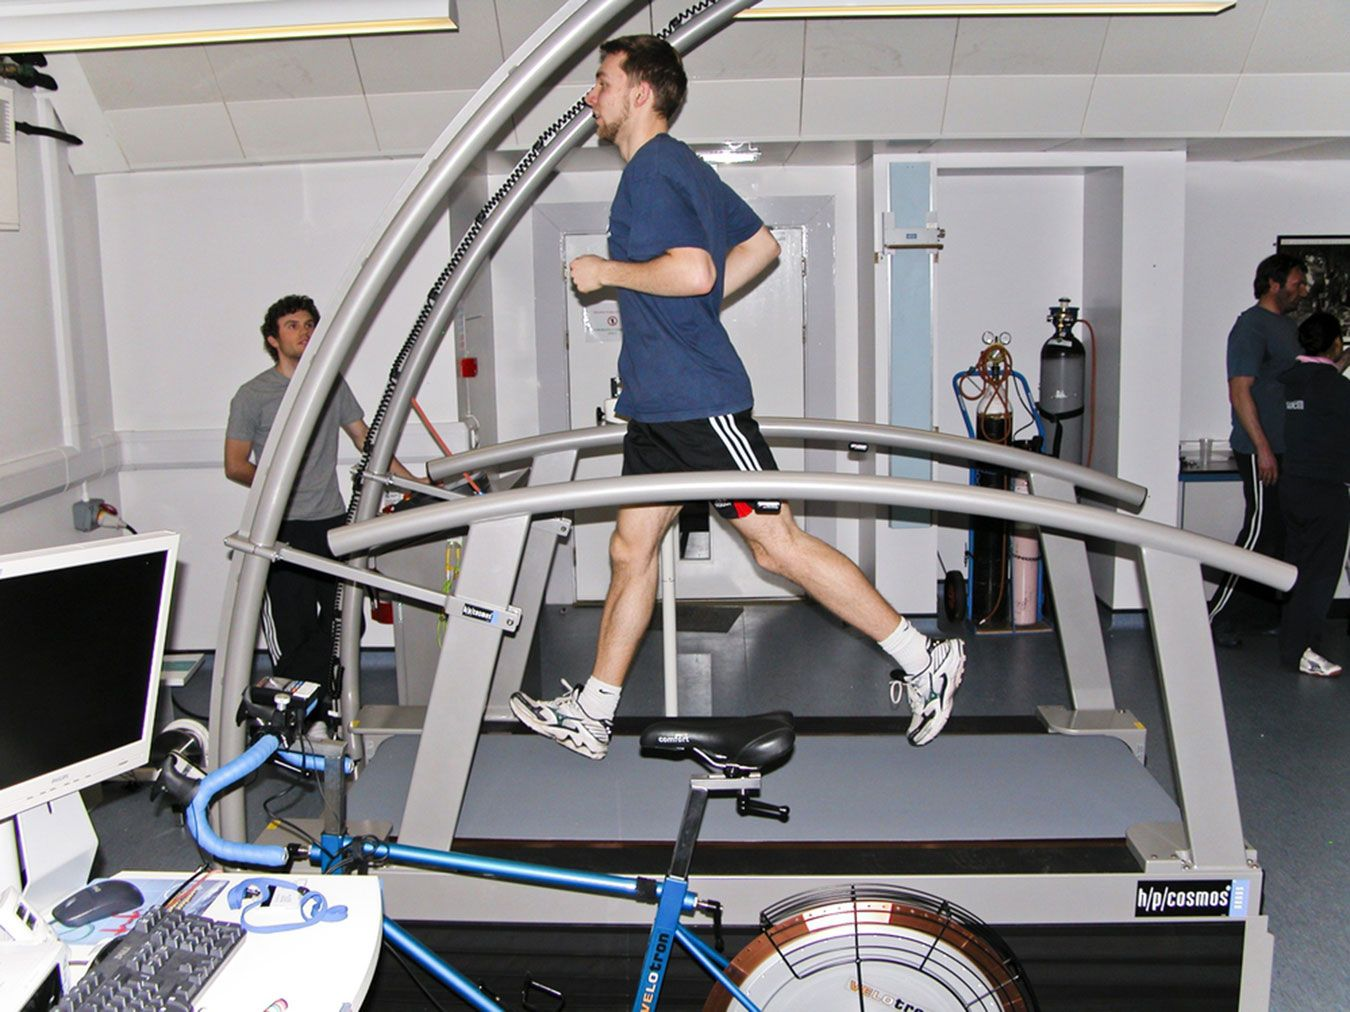 Kingston University's sport science course climbed 30 place to 15th in the country.